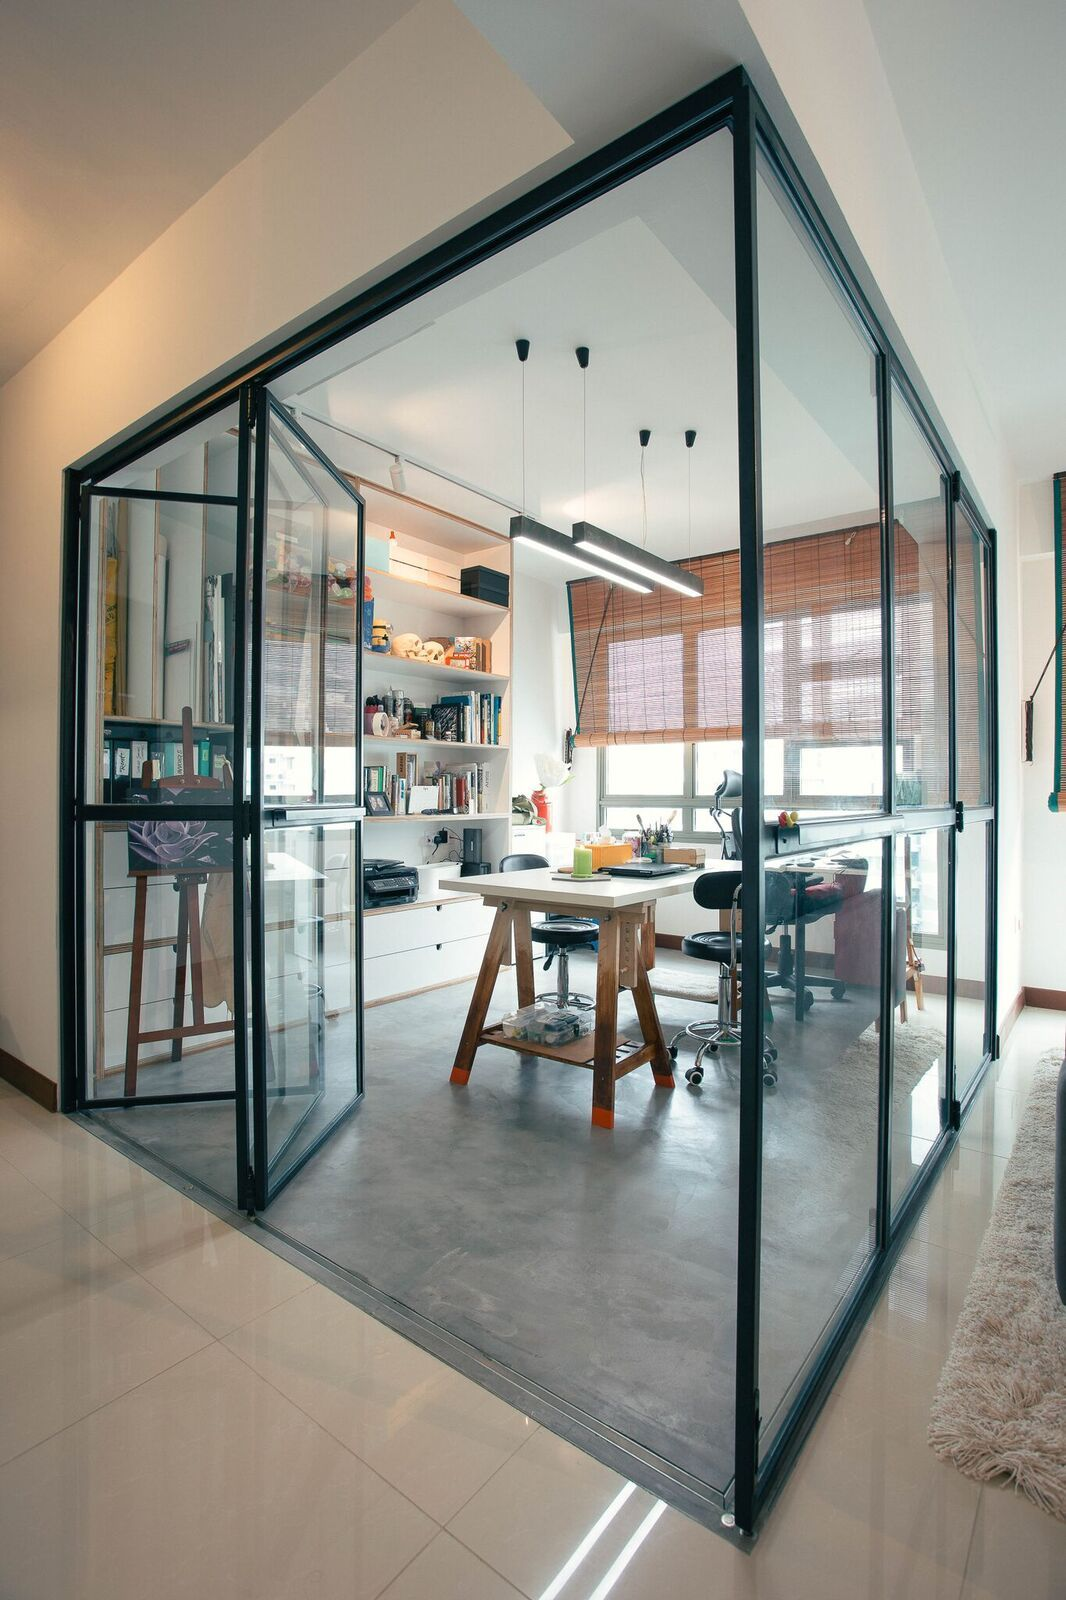 3 Room Hdb Interior Design Ideas: Glass Foldable Door For Study Room